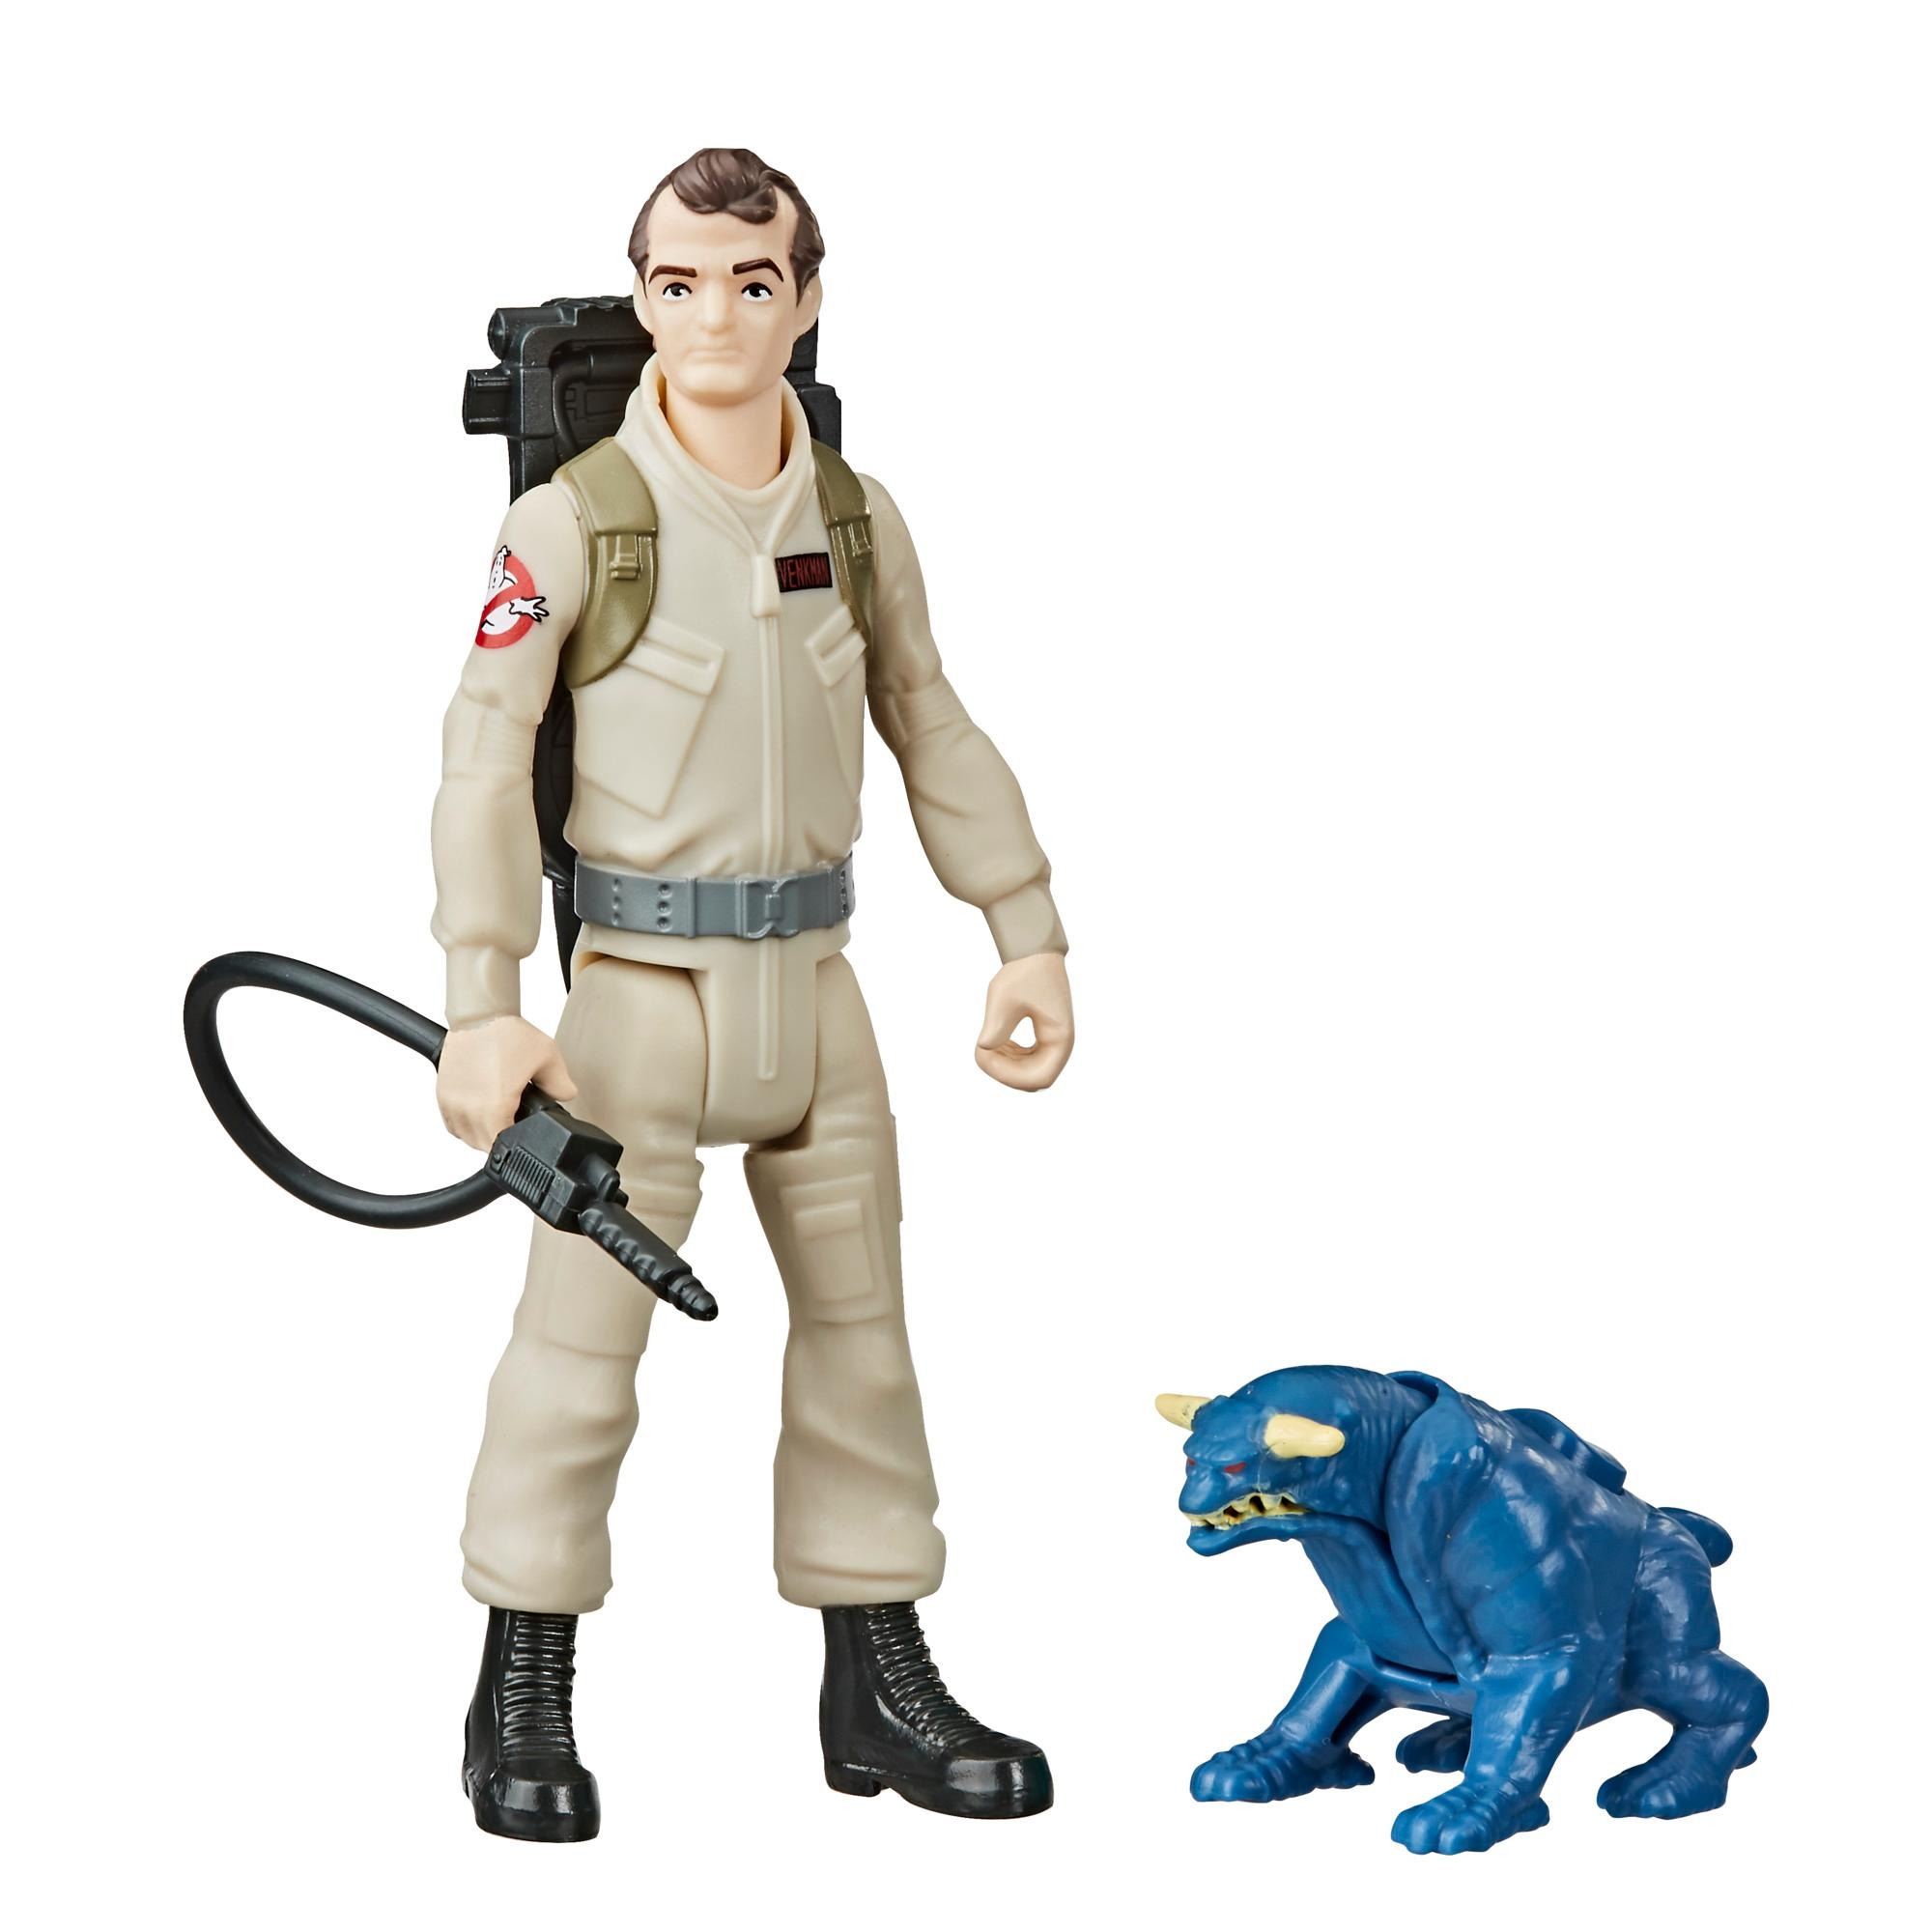 Ghostbusters Fright Features Peter Venkman Figure with Interactive Terror Dog Figure and Accessory, Kids Ages 4 and Up